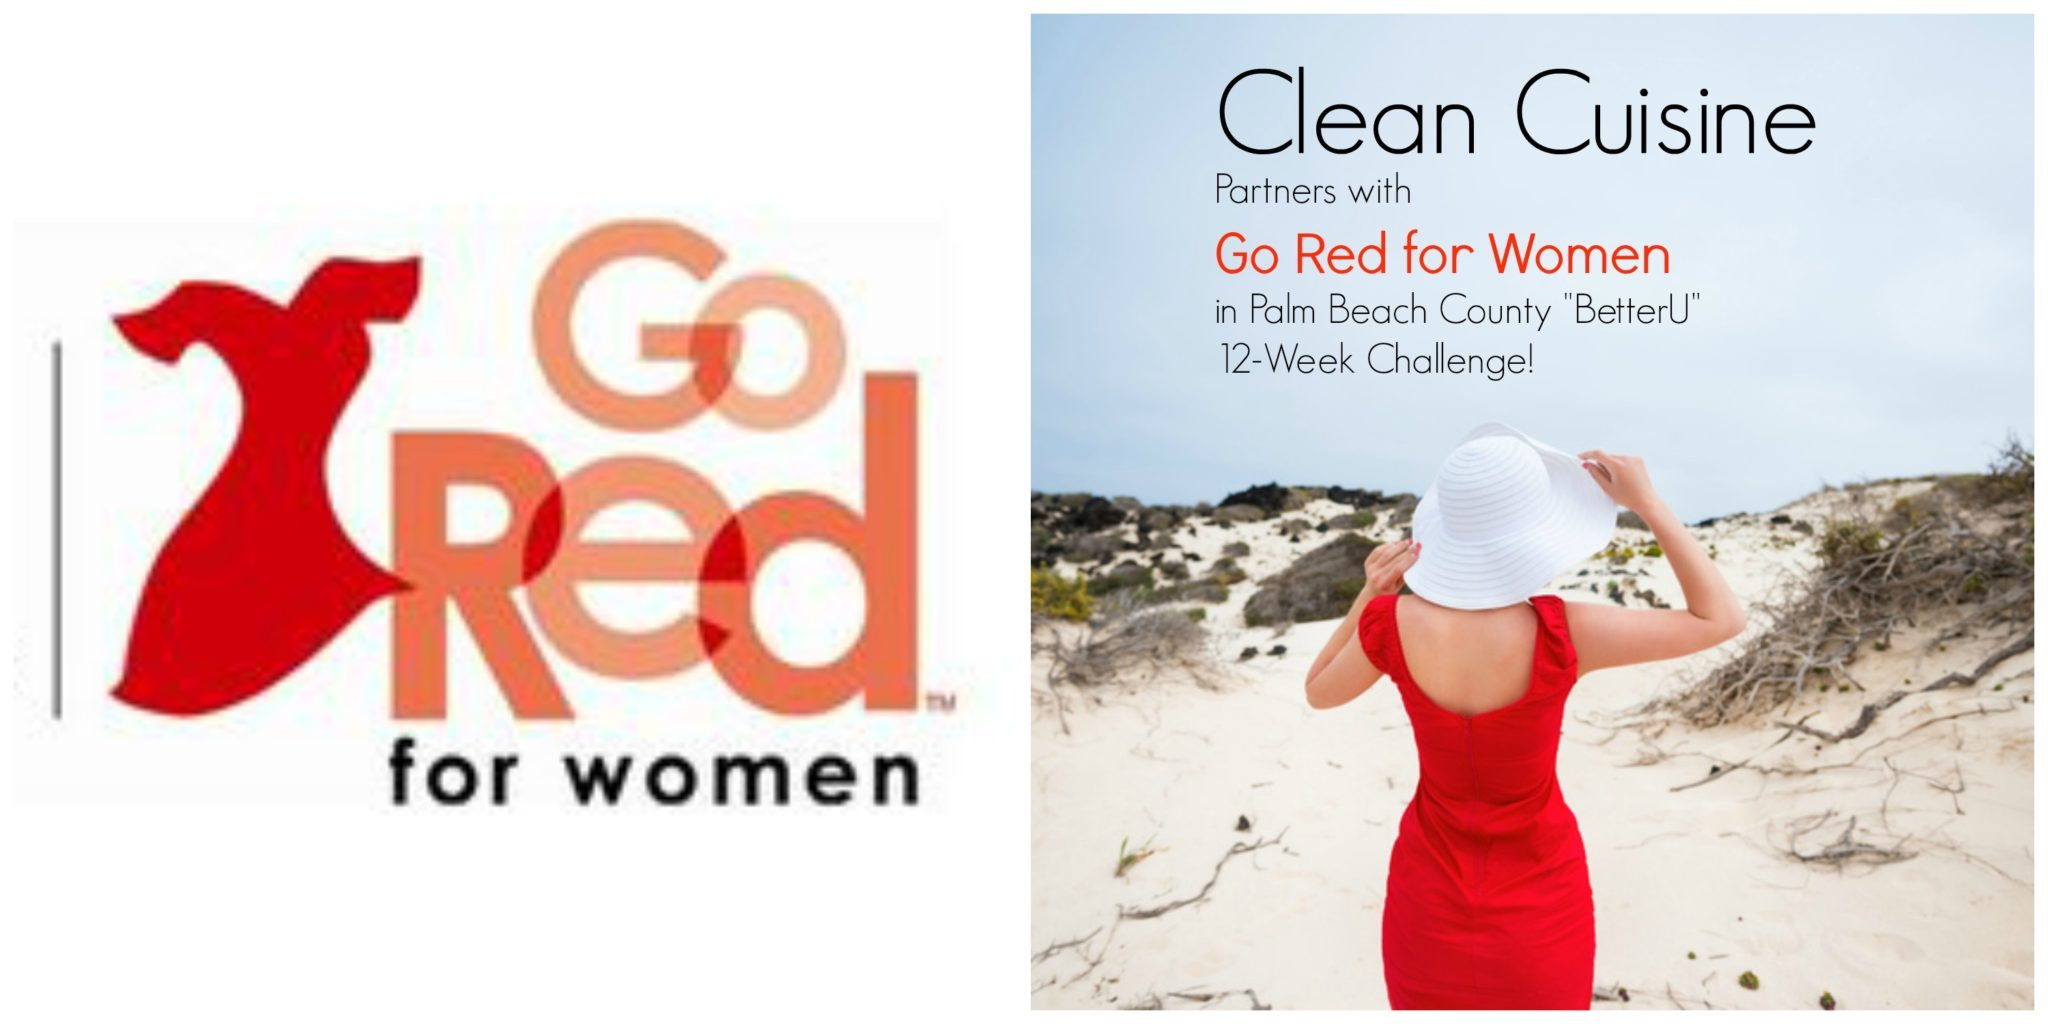 Go Red for Women Palm Beach